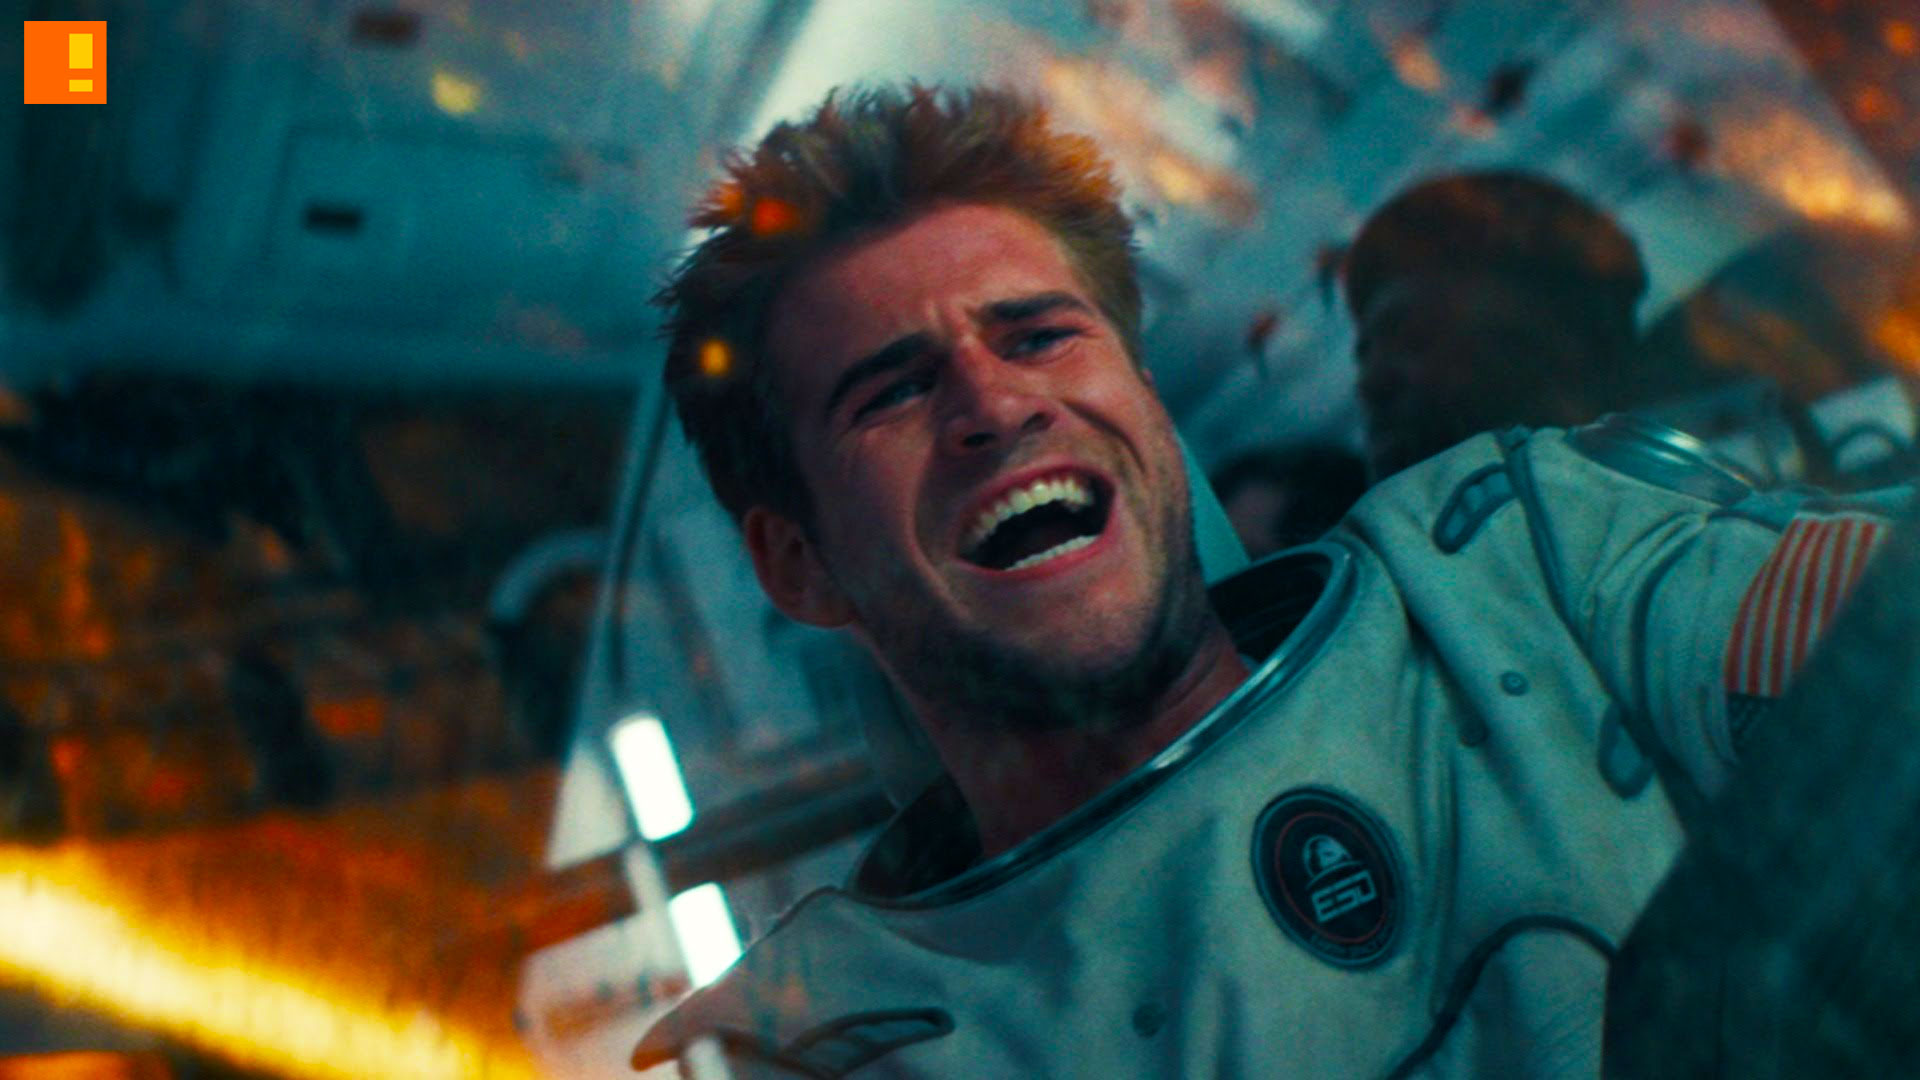 independence day resurgence trailer independence day resurgence cast independence day resurgence plot independence day resurgence imdb independence day resurgence spoilers independence day resurgence website independence day resurgence aliens independence day resurgence will smith independence day resurgence toys independence day resurgence movie independence day resurgence release date independence day resurgence alien ship independence day resurgence actors independence day resurgence action figures independence day resurgence angelababy independence day resurgence aircraft independence day resurgence and will smith independence day resurgence ancillary markets independence day resurgence alien skulls independence day resurgence adam baldwin independence day resurgence budget independence day resurgence book independence day resurgence brent spiner independence day resurgence box office independence day resurgence bill pullman independence day resurgence burj khalifa independence day resurgence burj independence day resurgence box office prediction independence day resurgence behind the scenes independence day resurgence big game trailer independence day resurgence comic independence day resurgence concept art independence day resurgence cast and crew independence day resurgence characters independence day resurgence congo independence day resurgence composer independence day resurgence clip independence day resurgence cities independence day resurgence connie independence day resurgence director independence day resurgence dubai independence day resurgence dvd independence day resurgence david arnold independence day resurgence distribution independence day resurgence destruction independence day resurgence dylan independence day resurgence dr okun independence day resurgence download independence day resurgence david levinson independence day resurgence esd independence day resurgence easter eggs independence day resurgence ending independence day resurgence explained independence day resurgence full movie independence day resurgence fighter independence day resurgence facebook independence day resurgence filming independence day resurgence full cast independence day resurgence forum independence day resurgence full movie online free independence day resurgence first trailer independence day resurgence filming locations independence day resurgence first trailer release date independence day resurgence gay independence day resurgence gif independence day resurgence game independence day resurgence guns independence day resurgence gravity independence day resurgence ganool independence day resurgence hollywood reporter independence day resurgence hybrid fighter independence day resurgence hindi independence day resurgence hd independence day resurgence history independence day resurgence hindi dubbed independence day resurgence hindi trailer independence day resurgence images independence day resurgence interview independence day resurgence imfdb independence day resurgence instagram independence day resurgence imax independence day resurgence impawards independence day resurgence itunes independence day resurgence imp independence day resurgence illuminati independence day resurgence jet independence day resurgence joey king independence day resurgence jeff goldblum independence day resurgence jaden smith independence day resurgence judd hirsch independence day resurgence jake morrison independence day resurgence jet fighter independence day resurgence kickass independence day resurgence karl stefanovic independence day resurgence logo independence day resurgence leaked independence day resurgence liam hemsworth independence day resurgence leaked script independence day resurgence london independence day resurgence length independence day resurgence lady gaga independence day resurgence las vegas independence day resurgence looks awful independence day resurgence latest news independence day resurgence mothership independence day resurgence movie trailer independence day resurgence movie poster independence day resurgence music independence day resurgence margaret colin independence day resurgence mothership size independence day resurgence marketing independence day resurgence movie online independence day resurgence merchandise independence day resurgence no will smith independence day resurgence new trailer independence day resurgence news independence day resurgence novel independence day resurgence new alien ships independence day resurgence national anthem independence day resurgence next trailer independence day resurgence new aliens independence day resurgence new ships independence day resurgence netflix independence day resurgence official trailer independence day resurgence online independence day resurgence official site independence day resurgence opening independence day resurgence on dvd independence day resurgence online subtitrat independence day resurgence online sa prevodom independence day resurgence official independence day resurgence official poster independence day resurgence official trailer 2016 cast of independence day resurgence independence day resurgence poster independence day resurgence plot spoilers independence day resurgence production company independence day resurgence prequel independence day resurgence premiere independence day resurgence promotions independence day resurgence planes independence day resurgence president independence day resurgence preview independence day resurgence quote independence day resurgence rating independence day resurgence reddit independence day resurgence rotten tomatoes independence day resurgence randy quaid independence day resurgence reaction independence day resurgence rumors independence day resurgence release in india independence day resurgence super bowl independence day resurgence ship independence day resurgence script independence day resurgence soundtrack independence day resurgence ship size independence day resurgence synopsis independence day resurgence storyline independence day resurgence speech independence day resurgence site independence day resurgence trailer music independence day resurgence teaser independence day resurgence tv tropes independence day resurgence timeline independence day resurgence twitter independence day resurgence tv spot independence day resurgence trailer breakdown independence day resurgence technology independence day resurgence trailer 2 independence day resurgence video game independence day resurgence viral independence day resurgence variety independence day resurgence video independence day resurgence viral site independence day resurgence vivica fox independence day resurgence vfx independence day resurgence vimeo independence day resurgence viooz independence day resurgence vodlocker independence day resurgence wiki independence day resurgence wallpaper independence day resurgence weapons independence day resurgence watch online independence day resurgence war of 1996 independence day resurgence wikia independence day resurgence watch online free independence day resurgence will smith death independence day resurgence xcom independence day resurgence youtube independence day resurgence youtube trailer independence day resurgence yify independence day resurgence 1996 independence day resurgence 2016 independence day resurgence 2016 trailer independence day resurgence 2016 full movie independence day 2 resurgence trailer independence day 2 resurgence independence day resurgence 3d independence day resurgence 720p independence day resurgence 90s